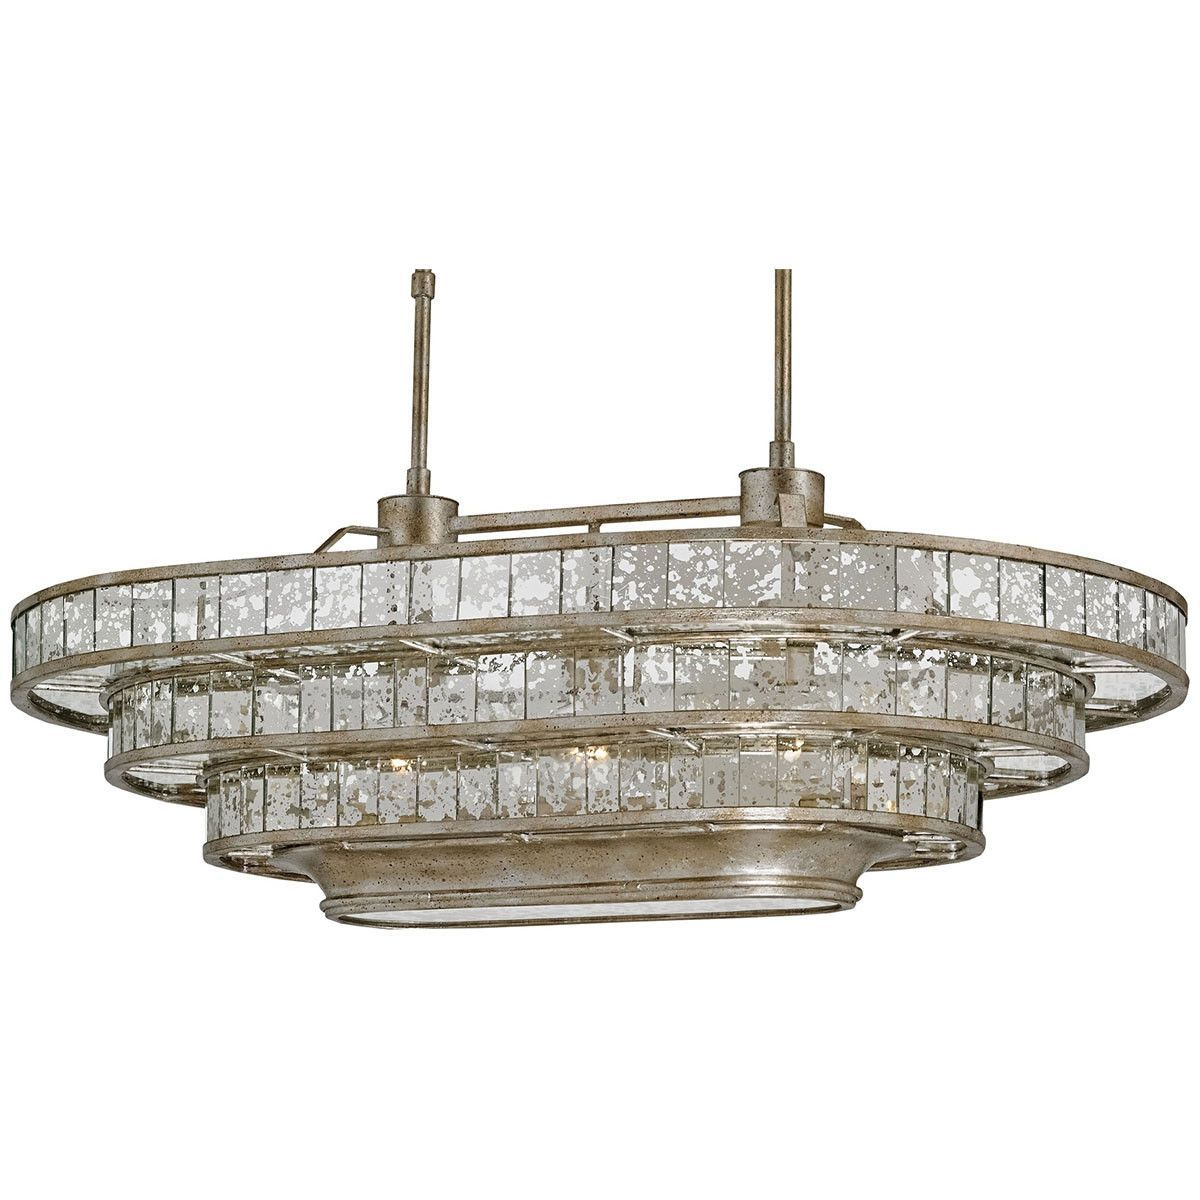 Currey and company frappe silver granello raj mirror oval chandelier aloadofball Gallery